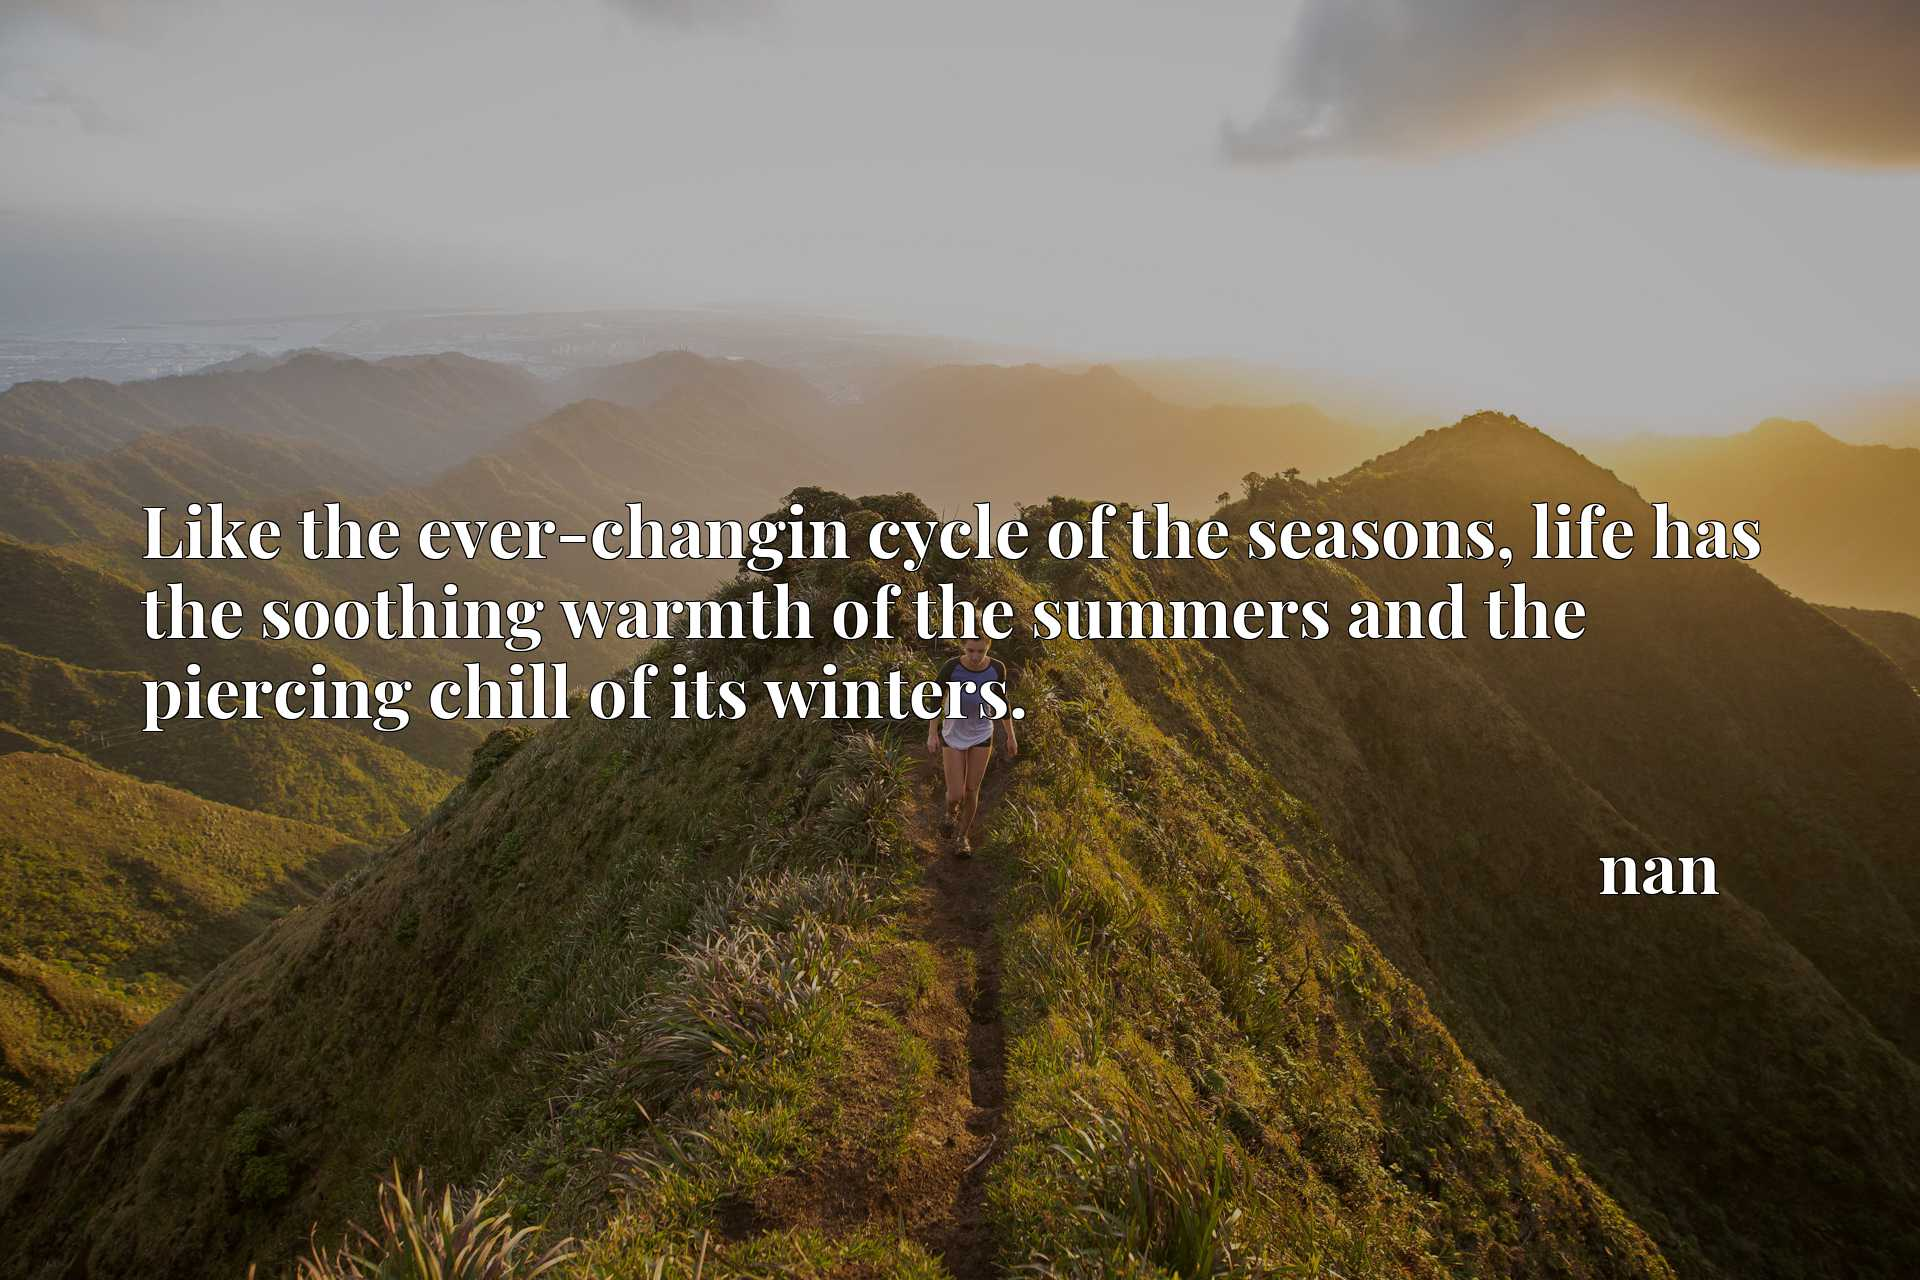 Like the ever-changin cycle of the seasons, life has the soothing warmth of the summers and the piercing chill of its winters.